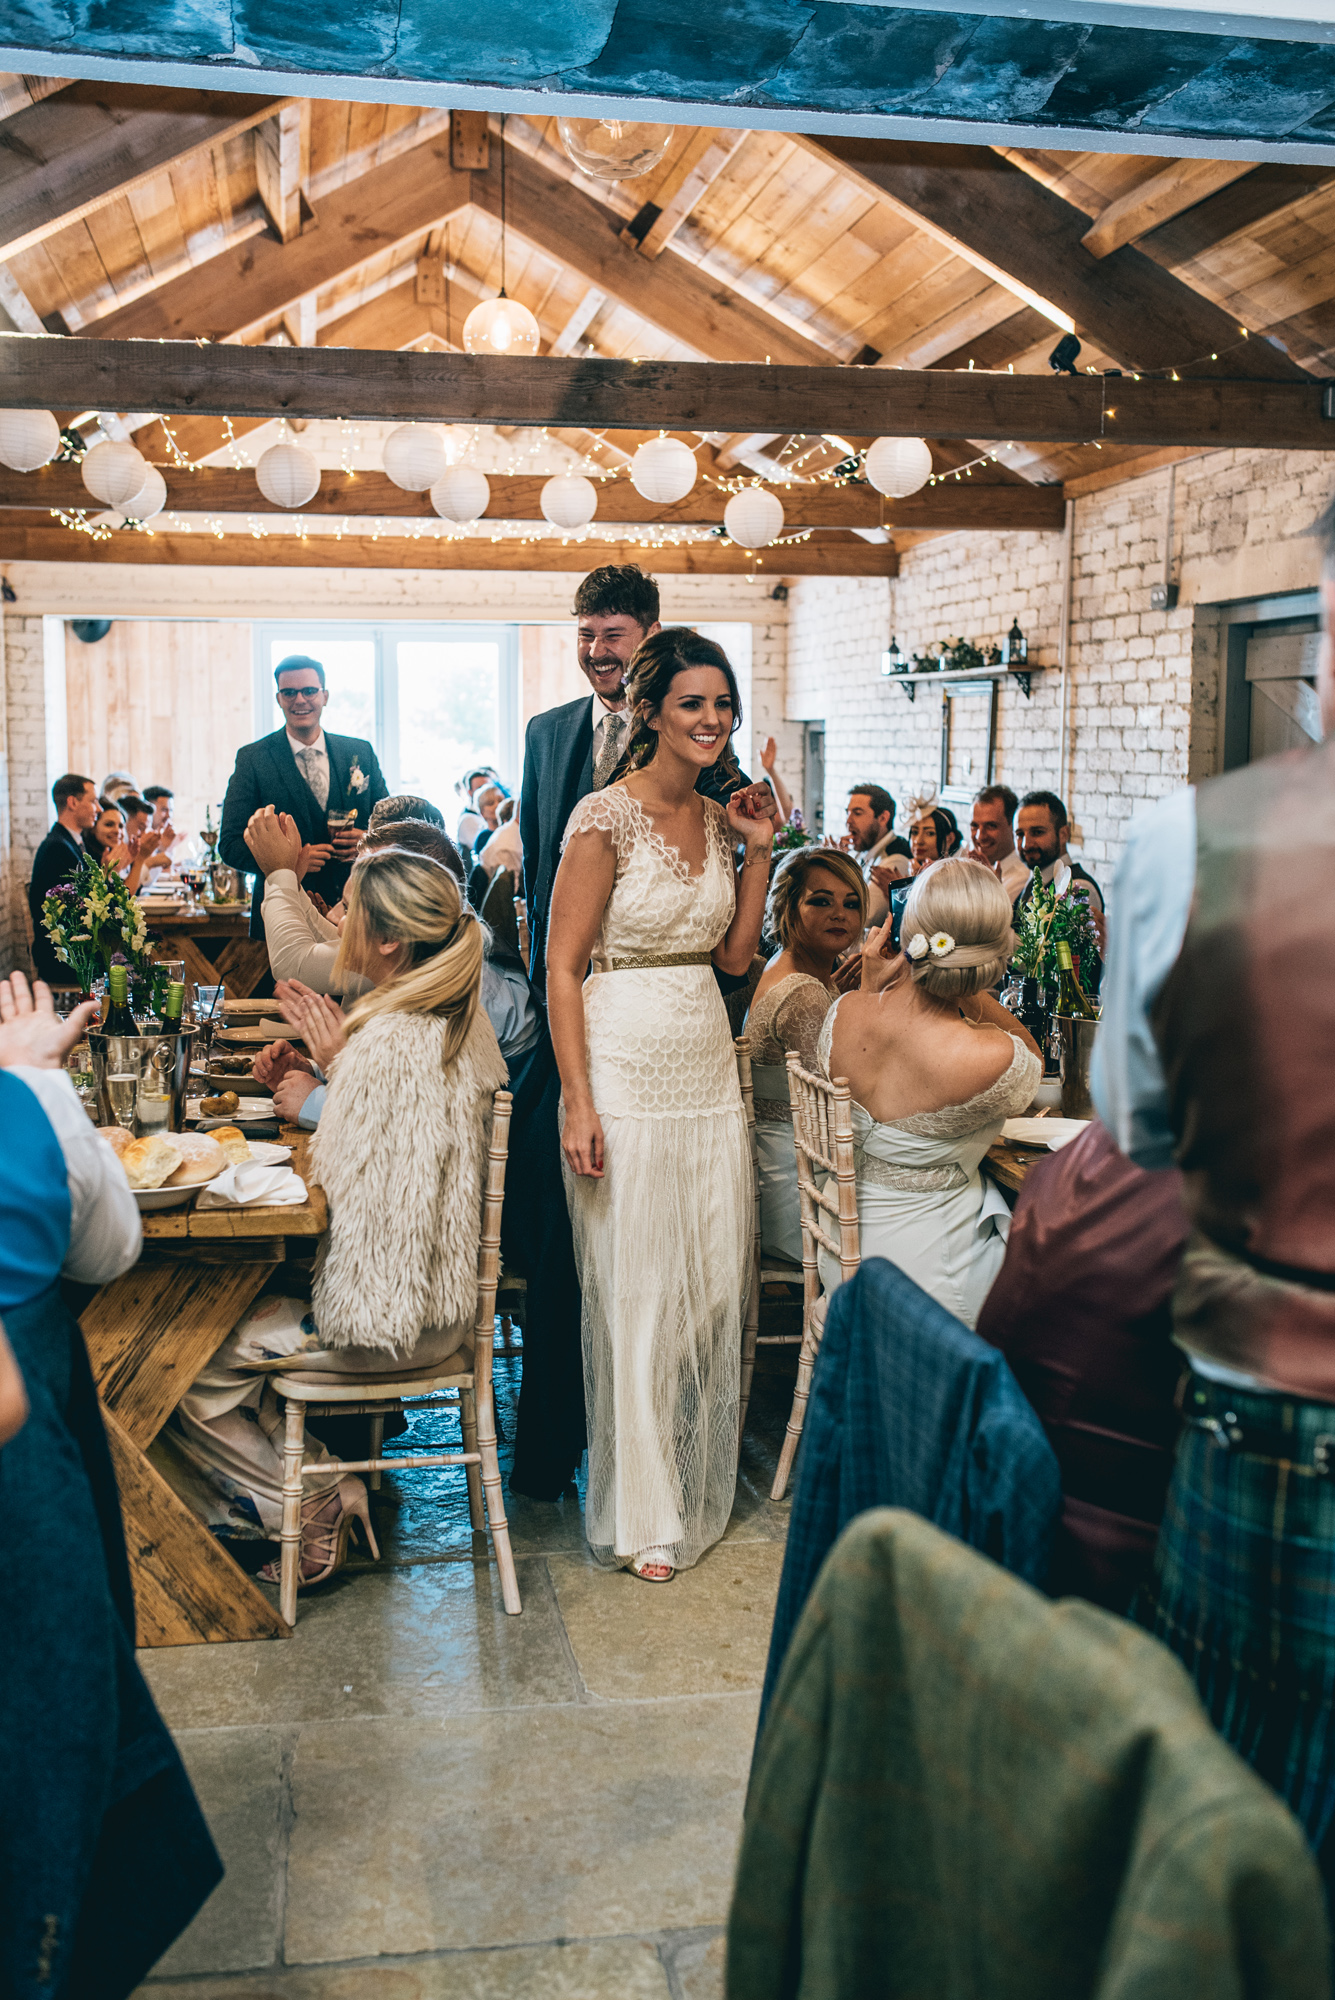 Kate-Beaumont-Sheffield-Lucy-Bohemian-Lace-Dress-Barn-Wedding-Cumbria-38.jpg